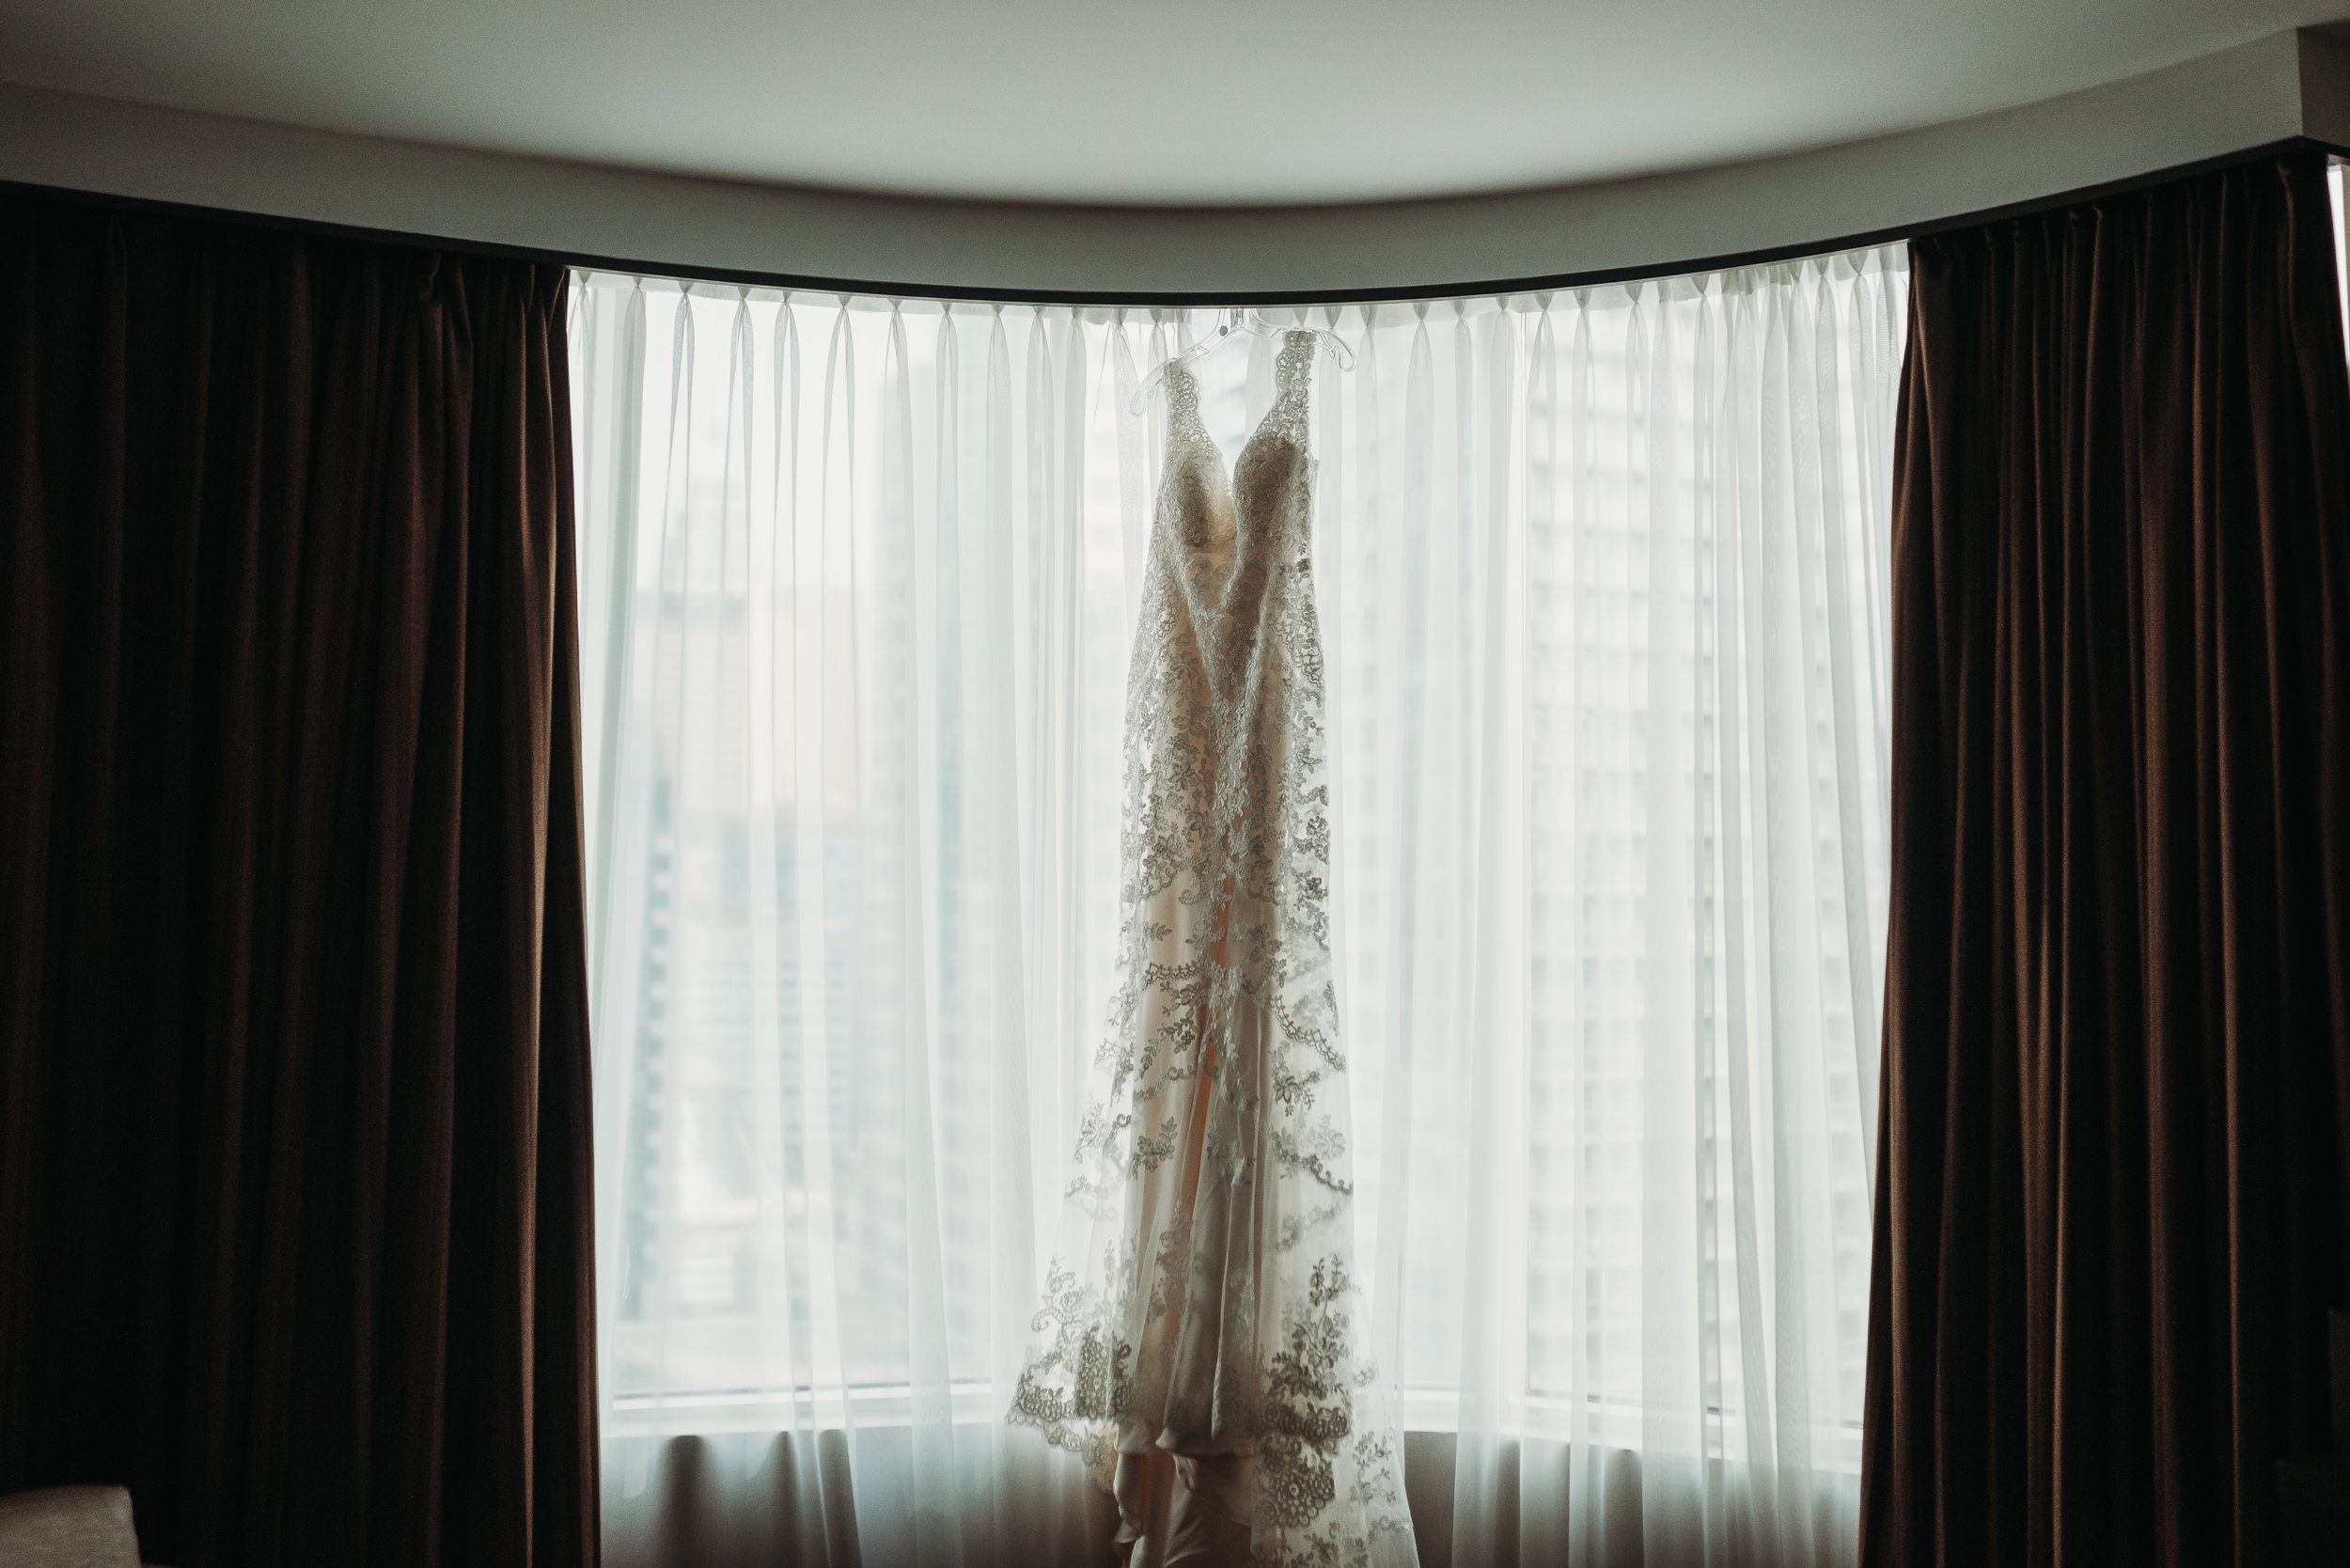 wedding-dress-toronto-rustic-boho-airship37-wedding-by-willow-birch-photo-toronto-documentary-wedding-photographers.jpg